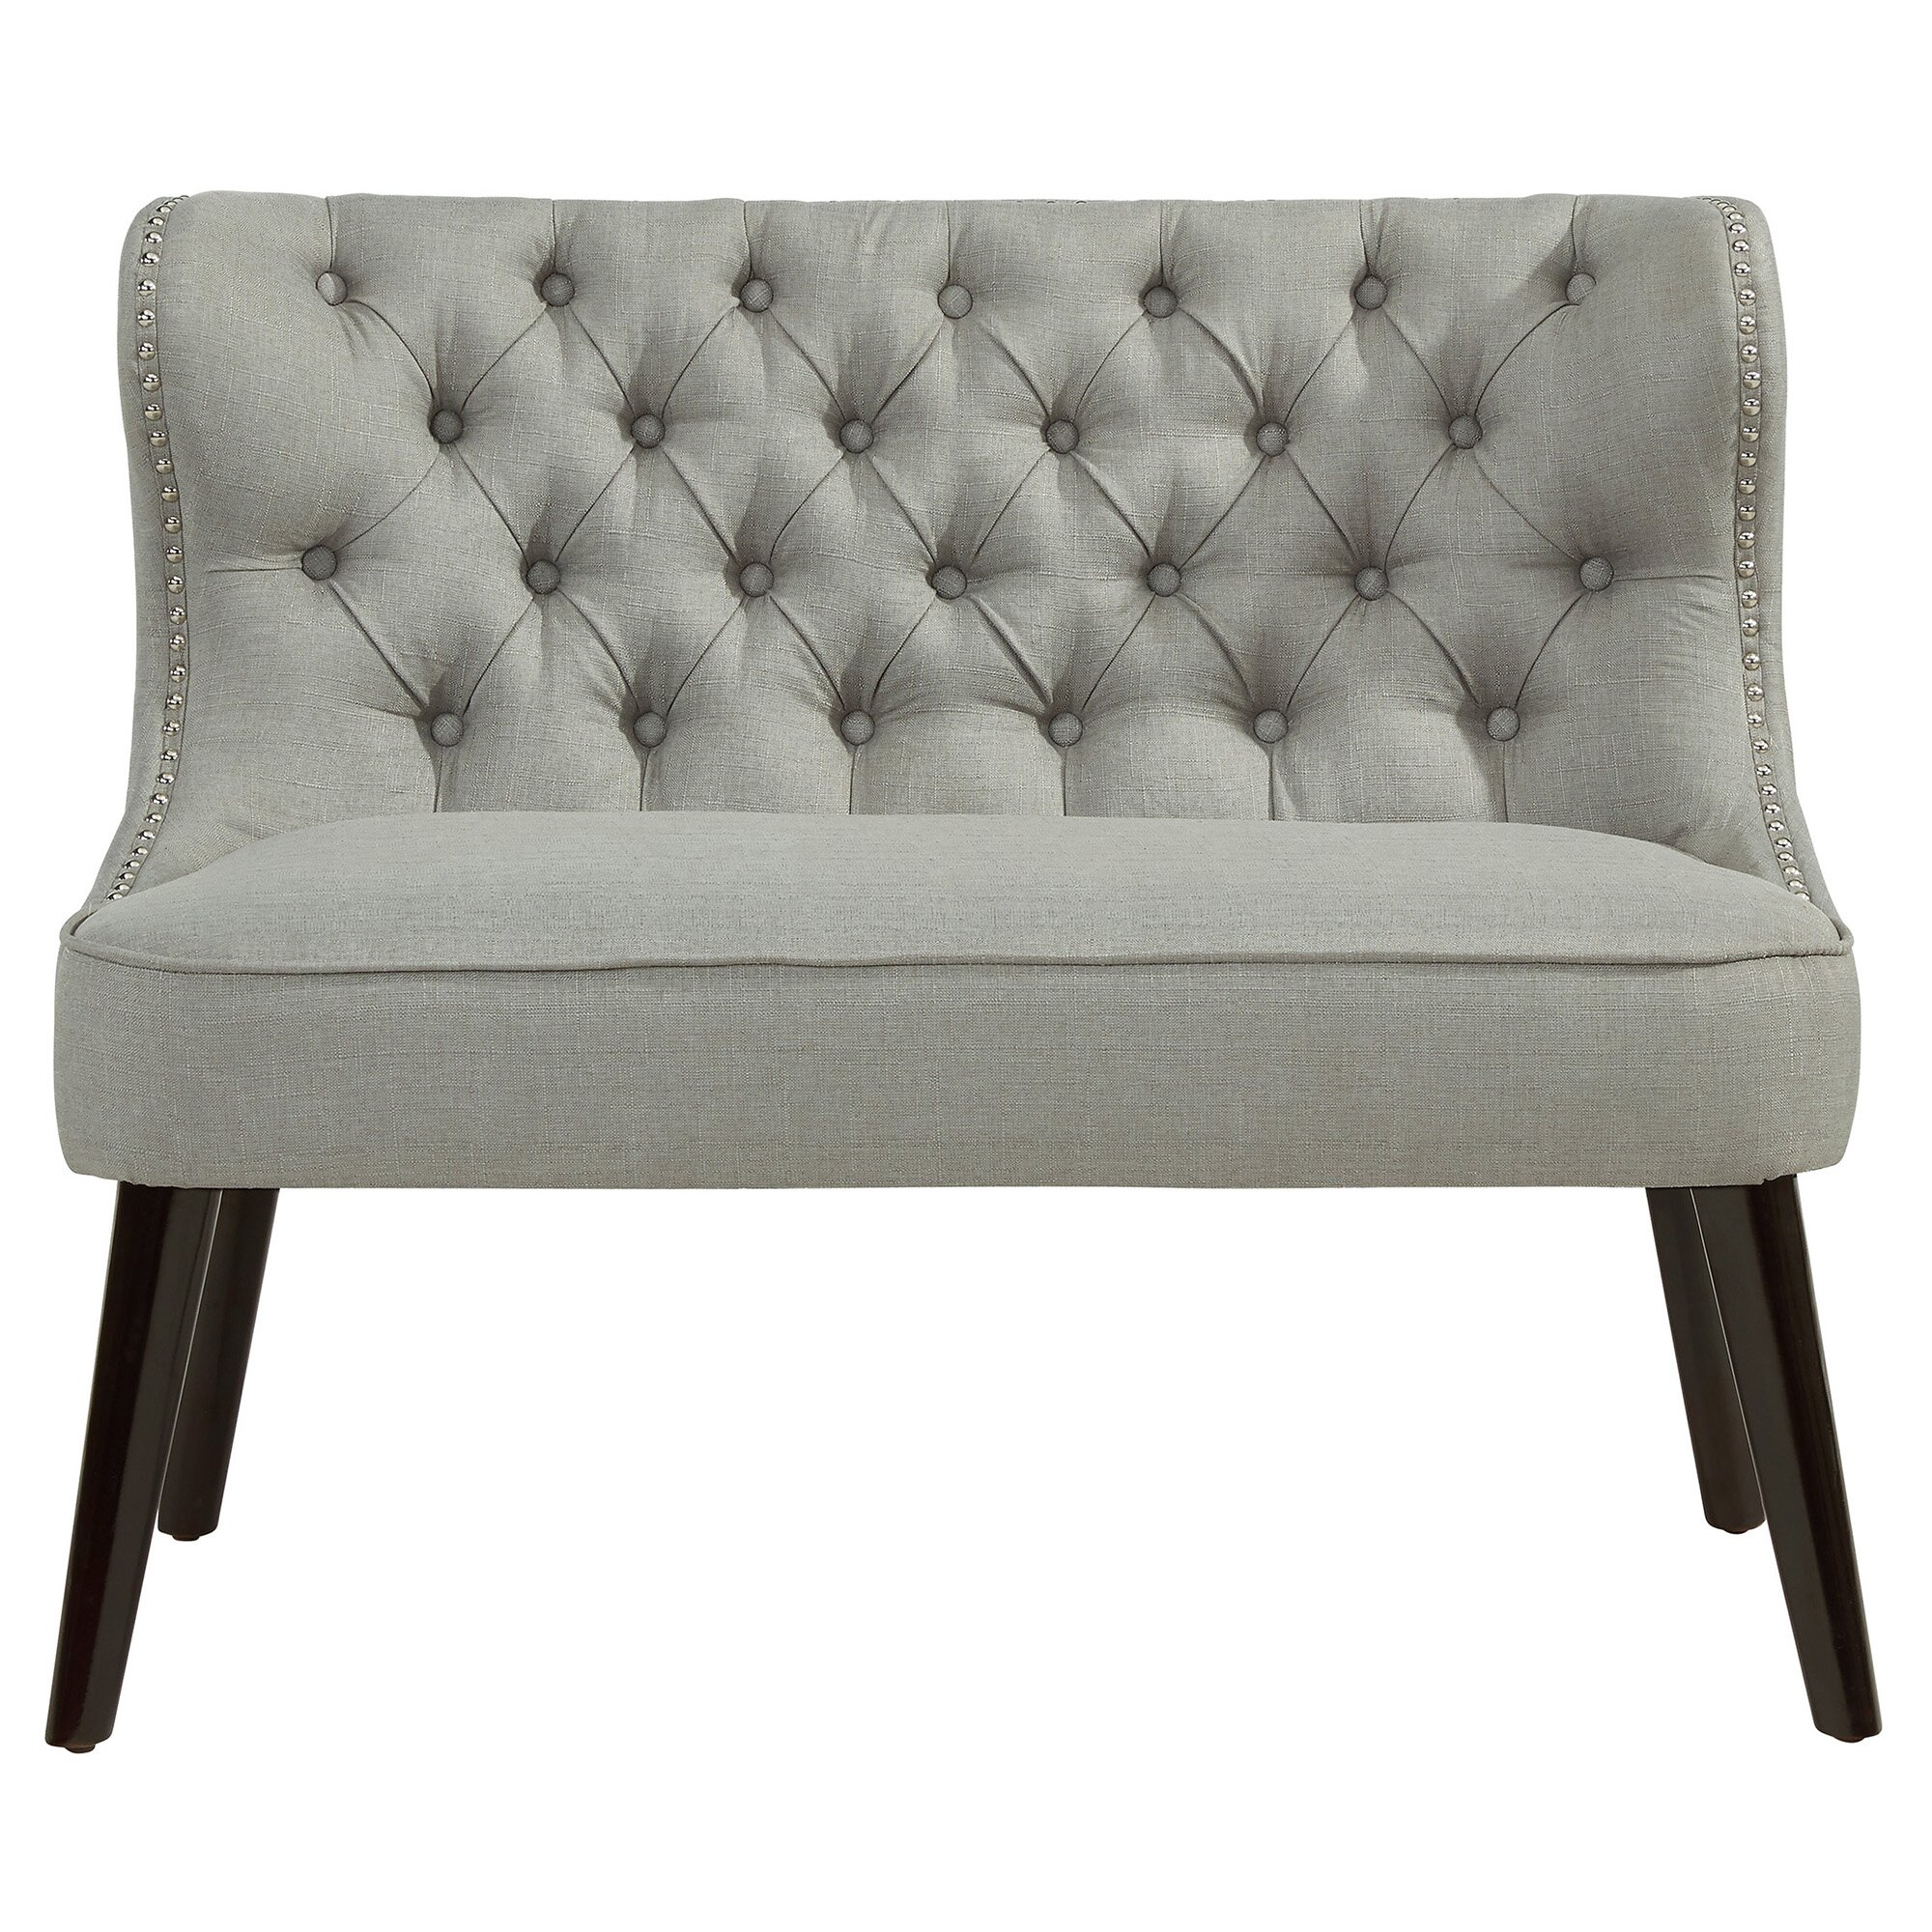 House Of Hampton Doring Tufted Wing Back Settee Bedroom